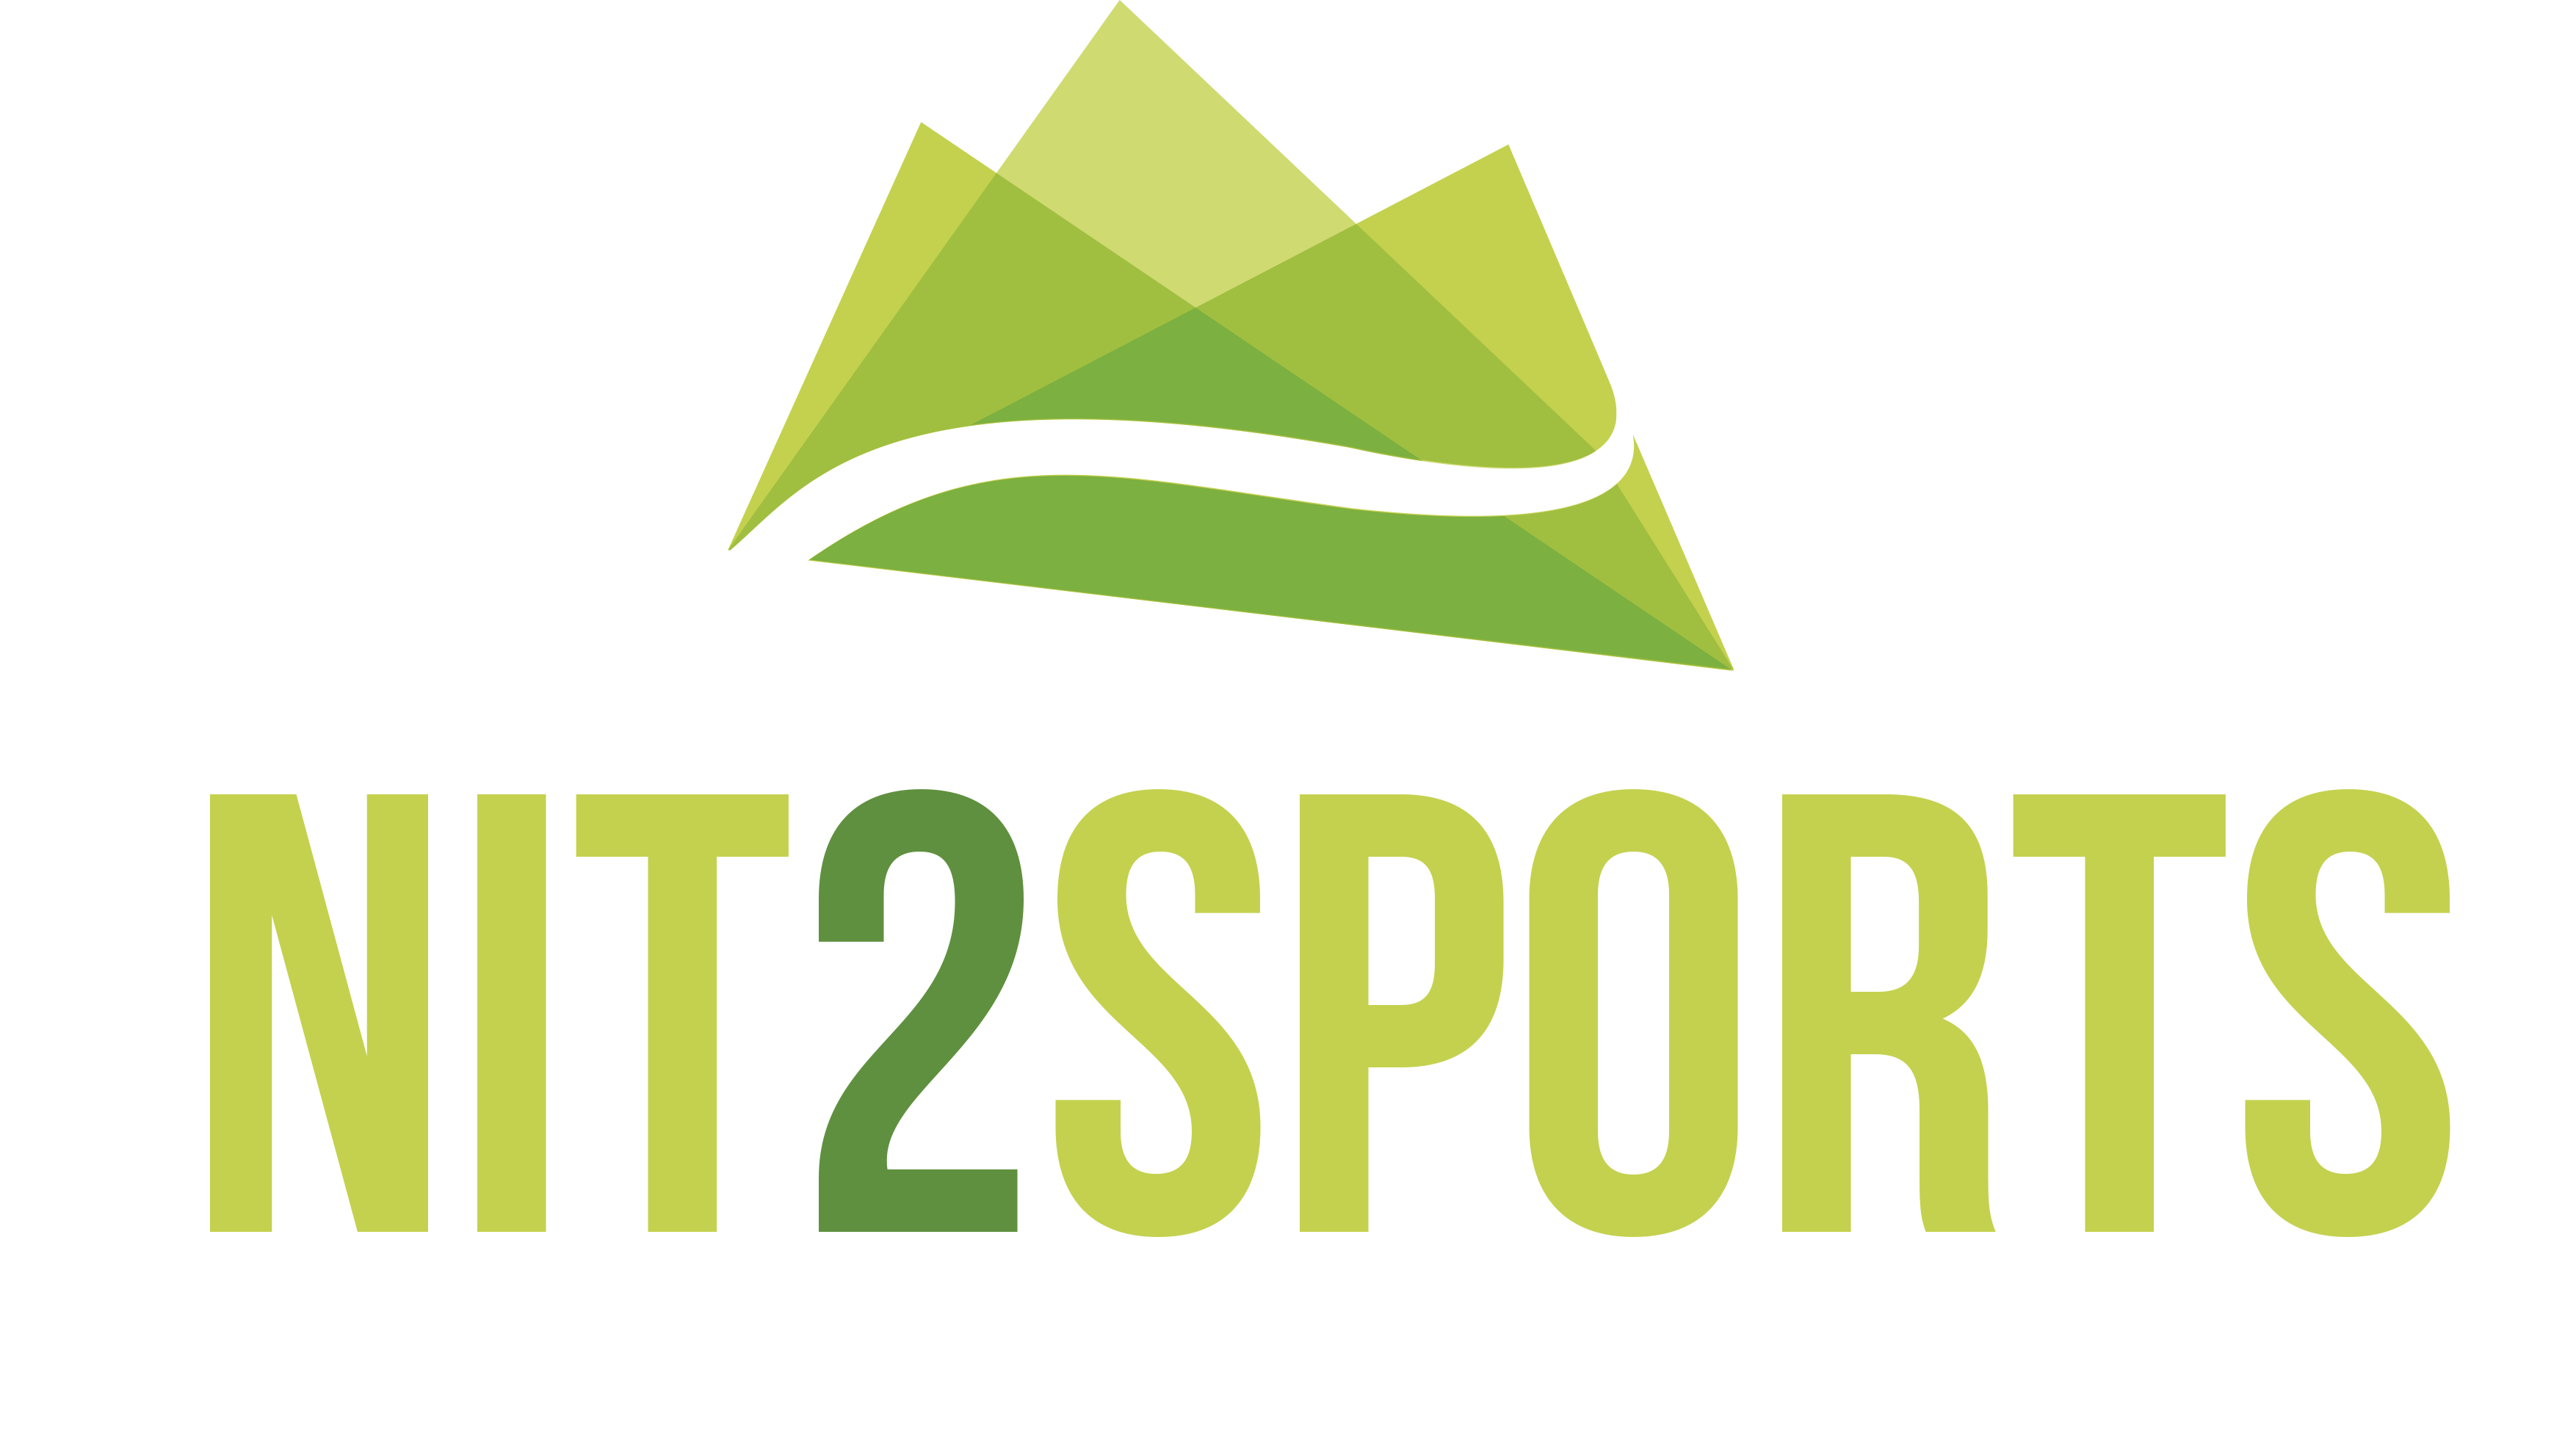 Resultados – TRAIL RUNNING 2016 | Circuito de Trail Run Nit2Sports - 2018